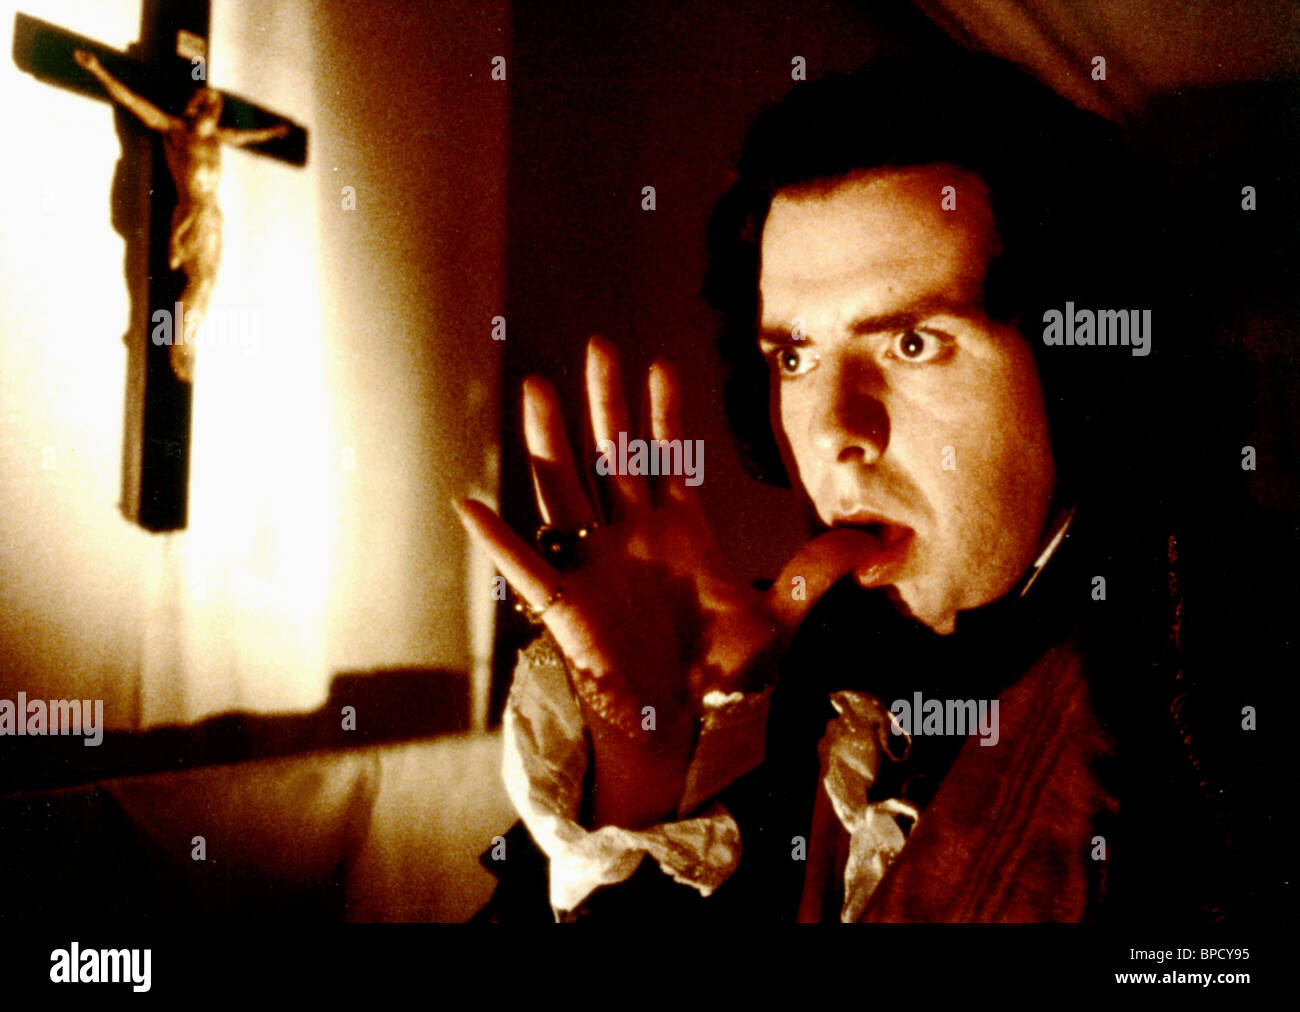 TIMOTHY SPALL GOTHIC (1986) - Stock Image